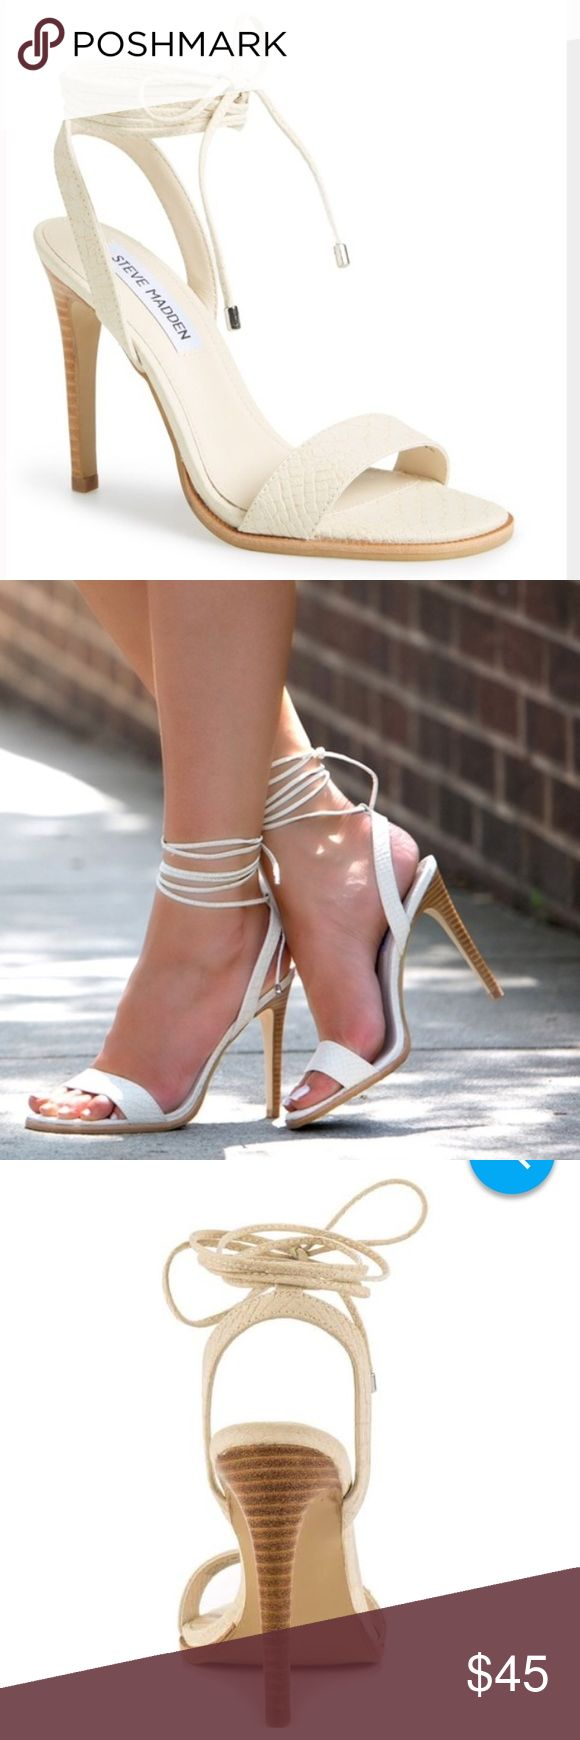 Steve Madden Faithful lace up reptile heel Look gorgeous in these beautiful reptile embossed ankle strapped heels. Wear these tied up your ankle or at the front in a bow, your choice! Heel is 4.5 inches. Comes with original box. Steve Madden Shoes Heels